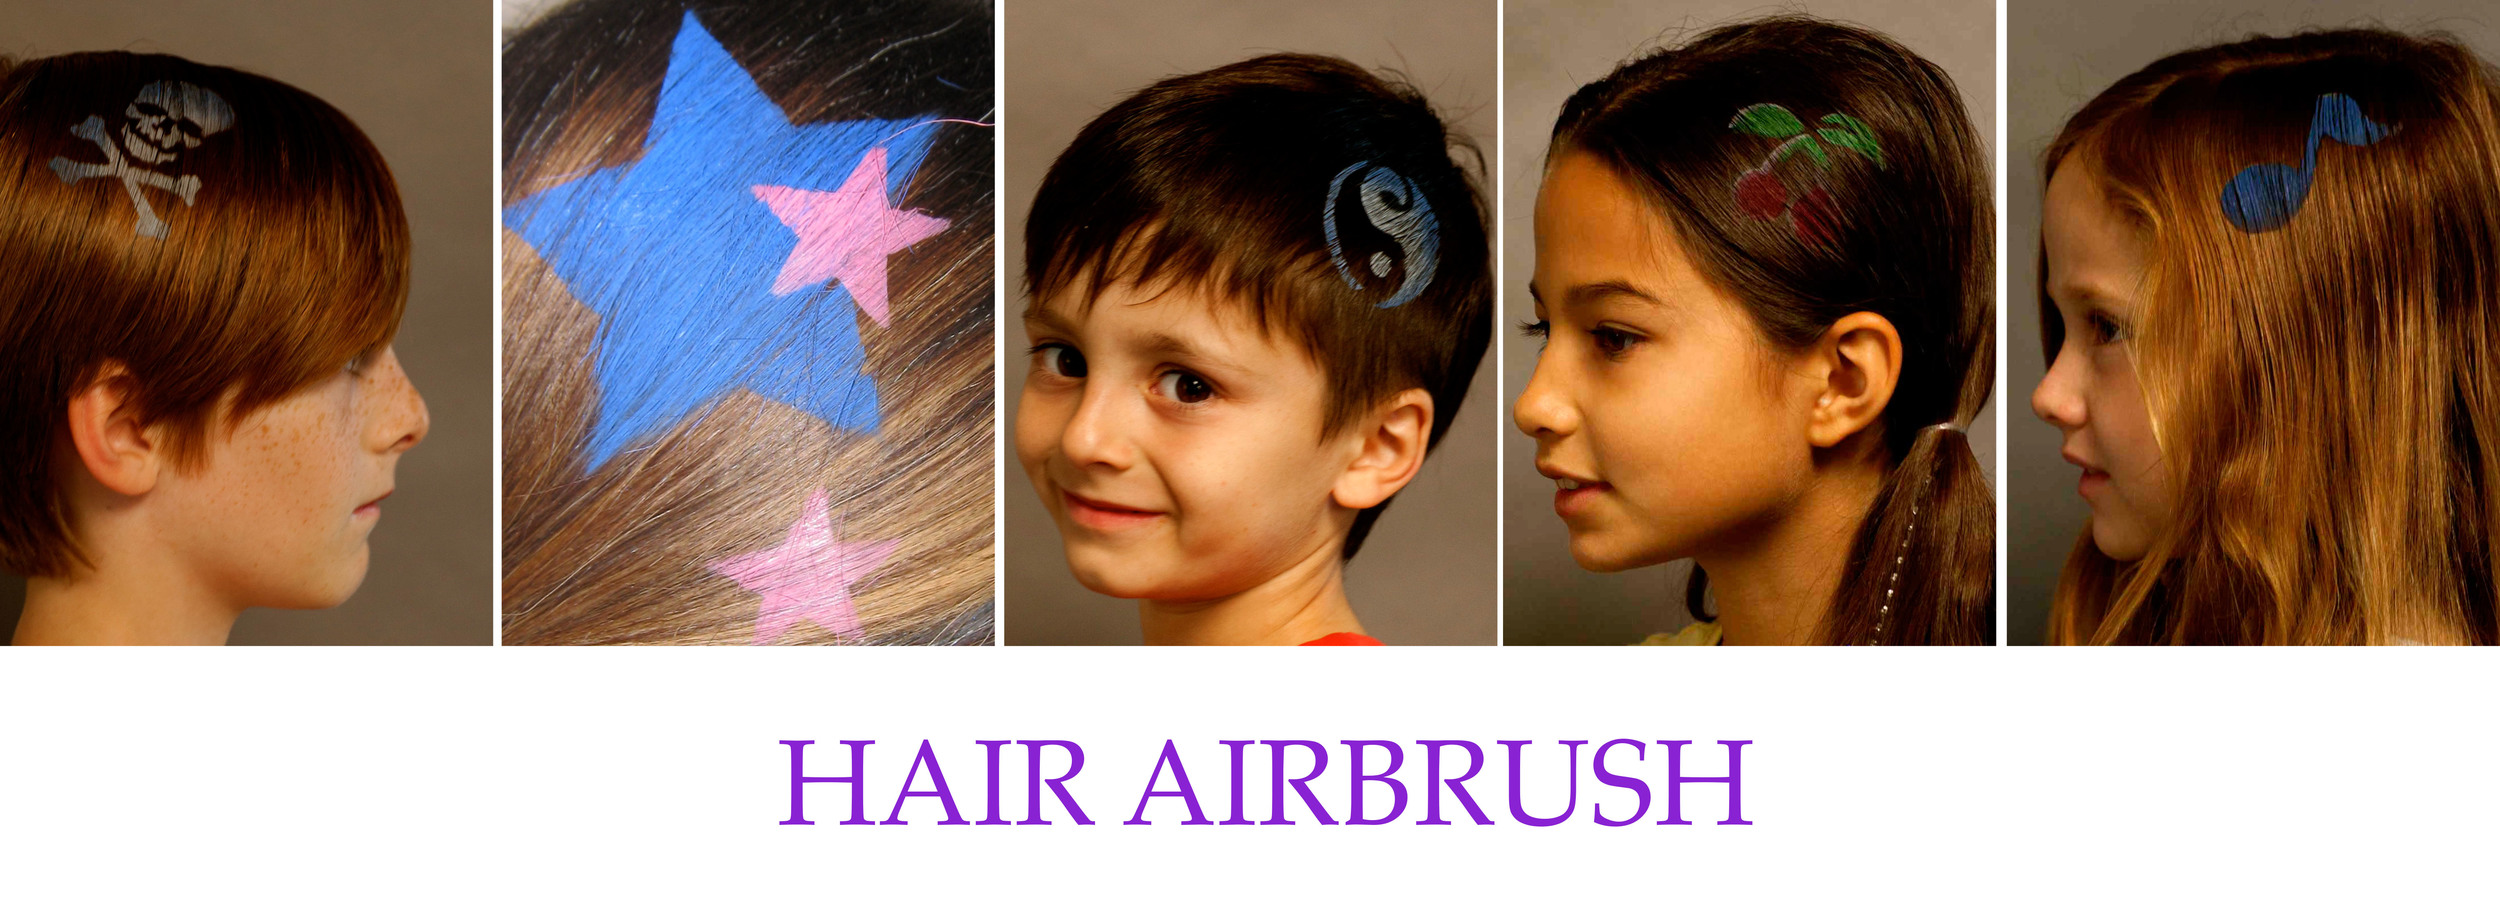 Hair Airbrush We Adorn You.jpg